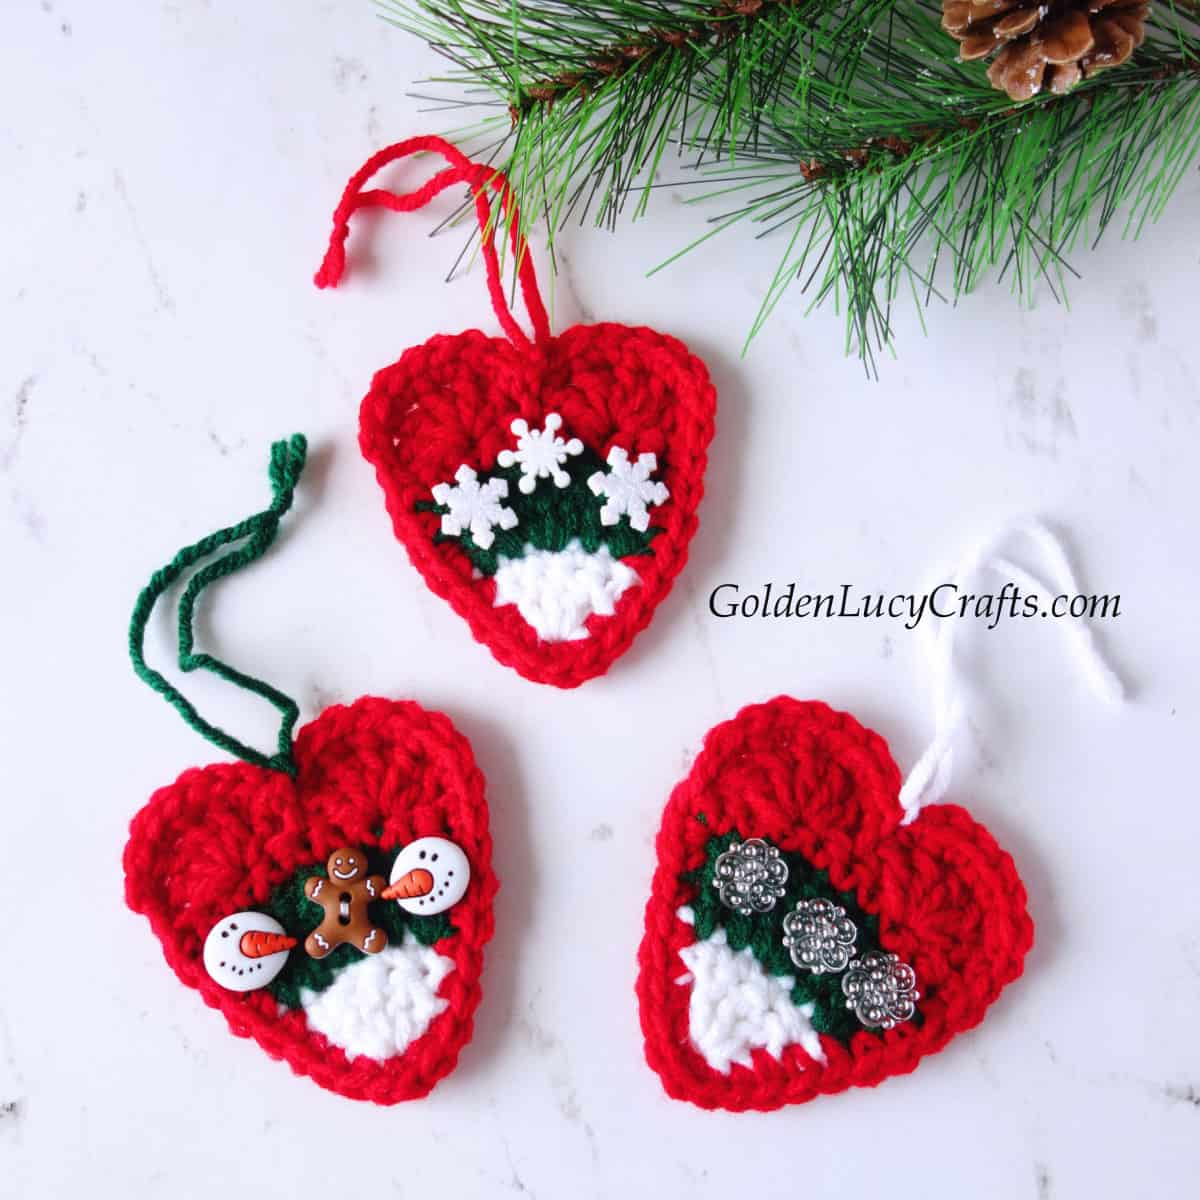 Crochet Christmas heart ornaments in red, white and green embellished with buttons.